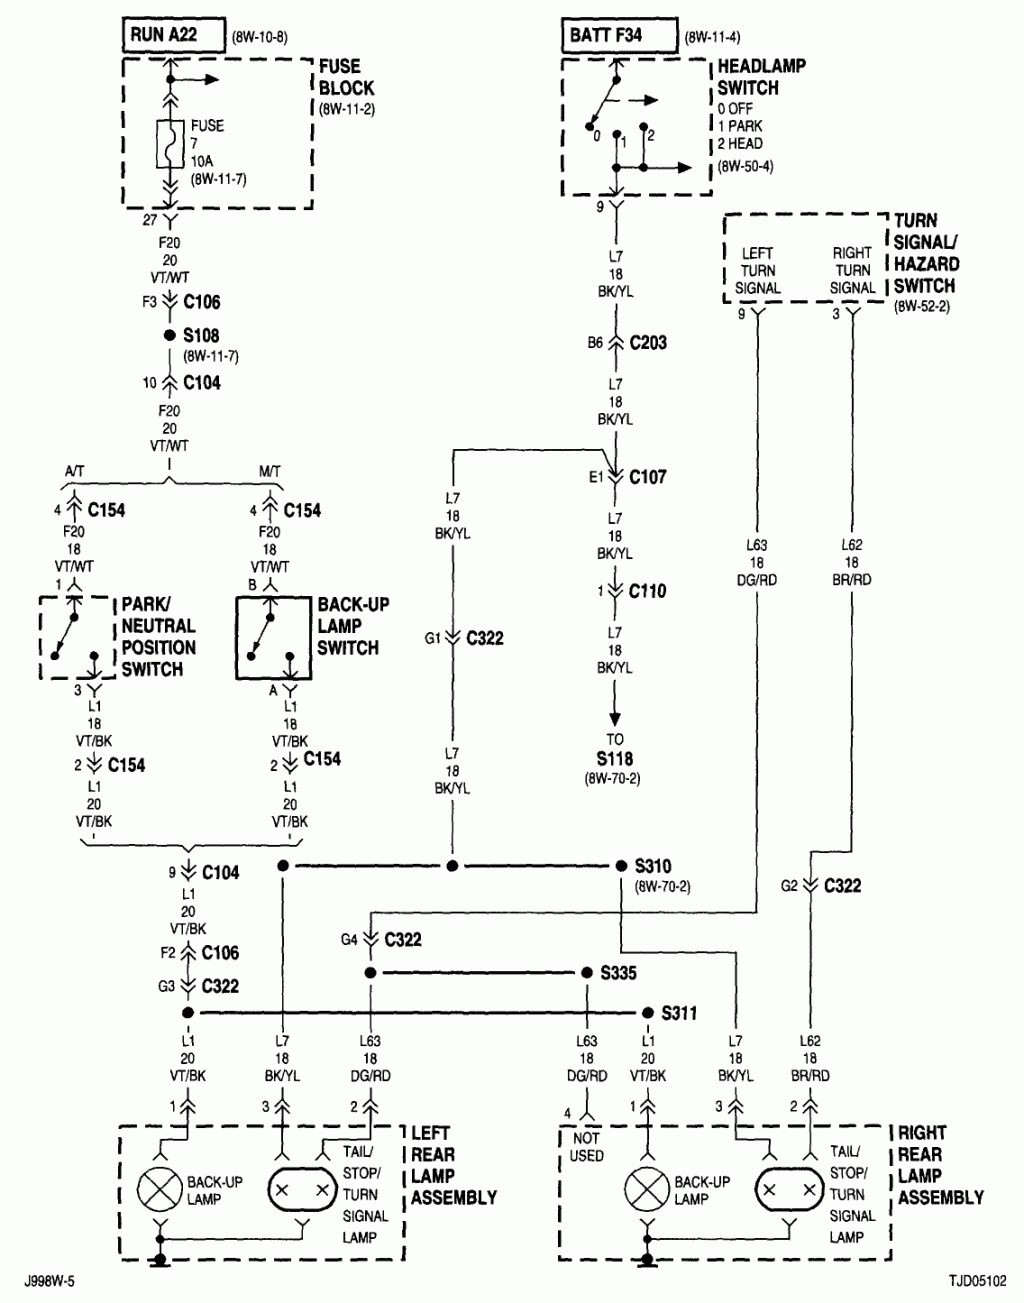 [DIAGRAM_1CA]  Jeep Cj Wiring Light - poli.oat7.bestbios.nl | Light Switch Wiring Diagram For 1974 Cj5 |  | Diagram Source